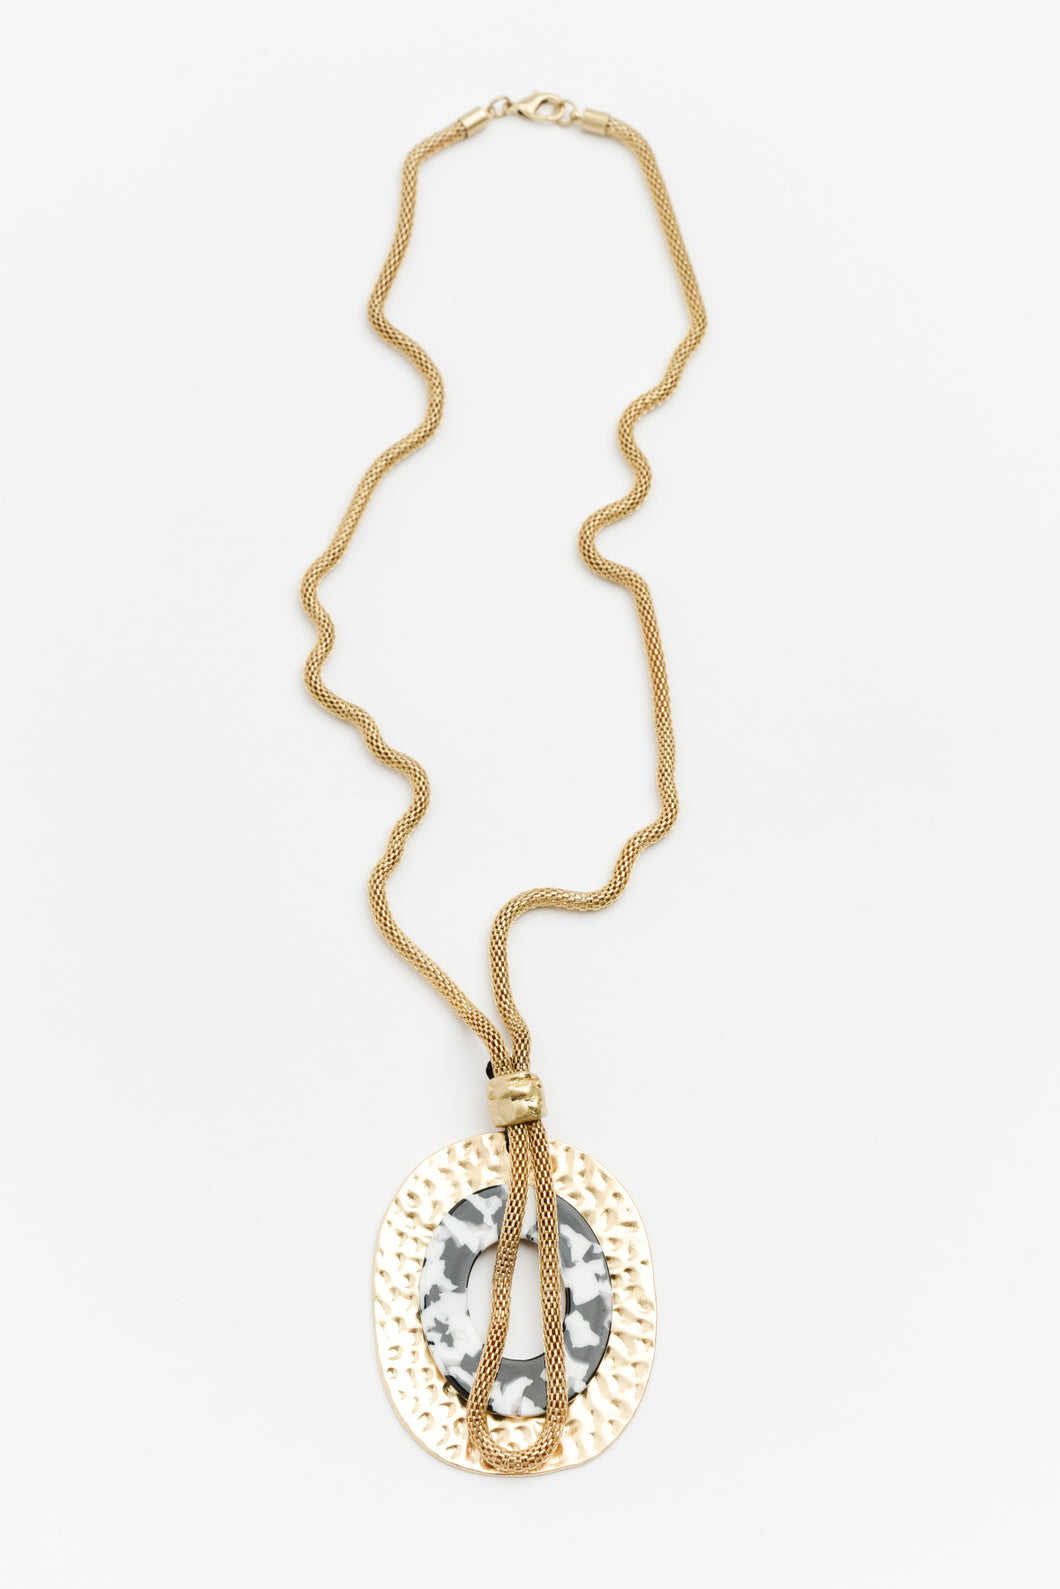 Kimberley Gold Resin Necklace - Blue Bungalow